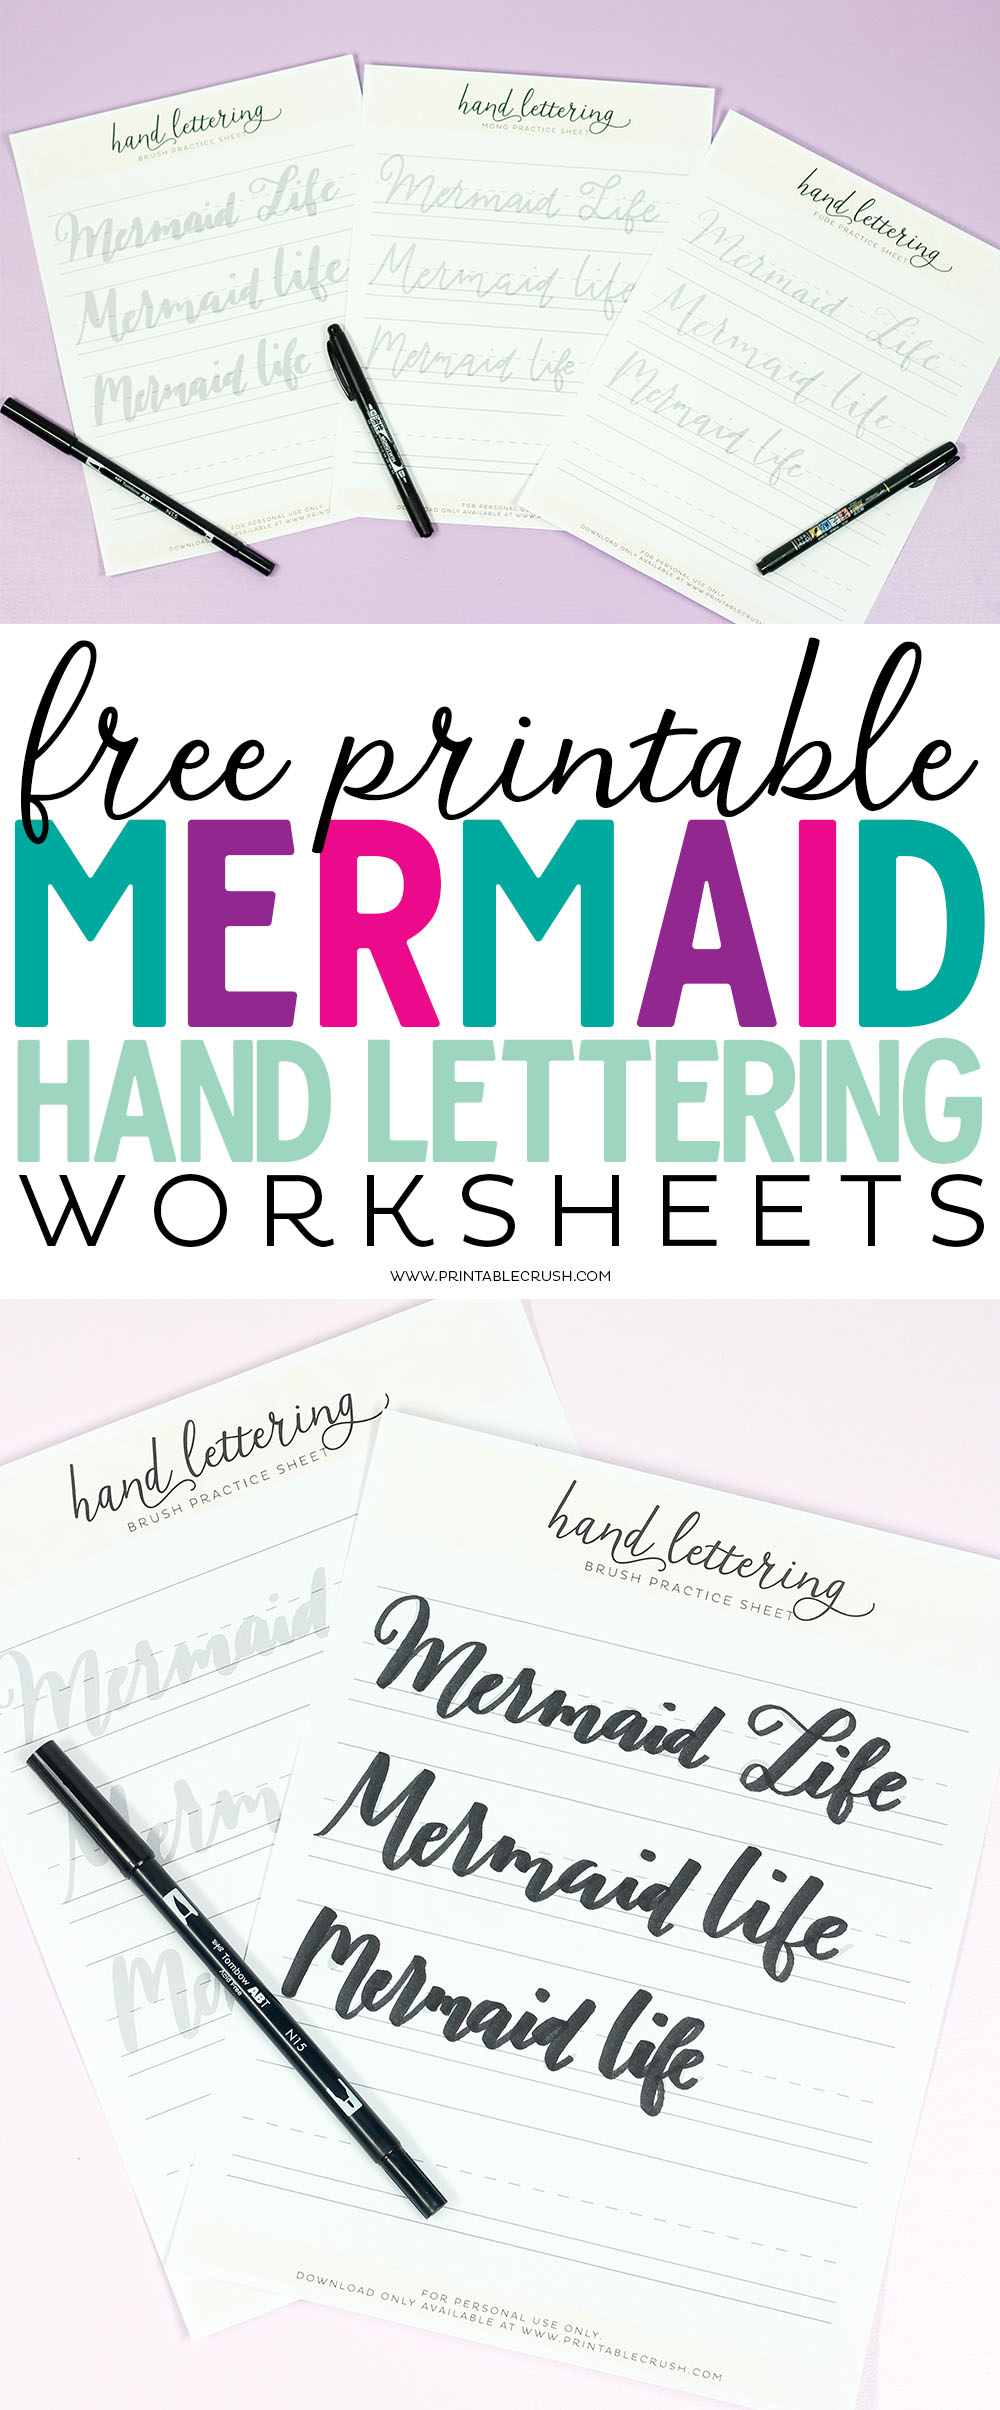 Practice your hand lettering skills with these FREE Mermaid Hand Lettering Worksheets. You'll get 3 pages to use with fudenosuke pens, dual brush pens, and mono pens.